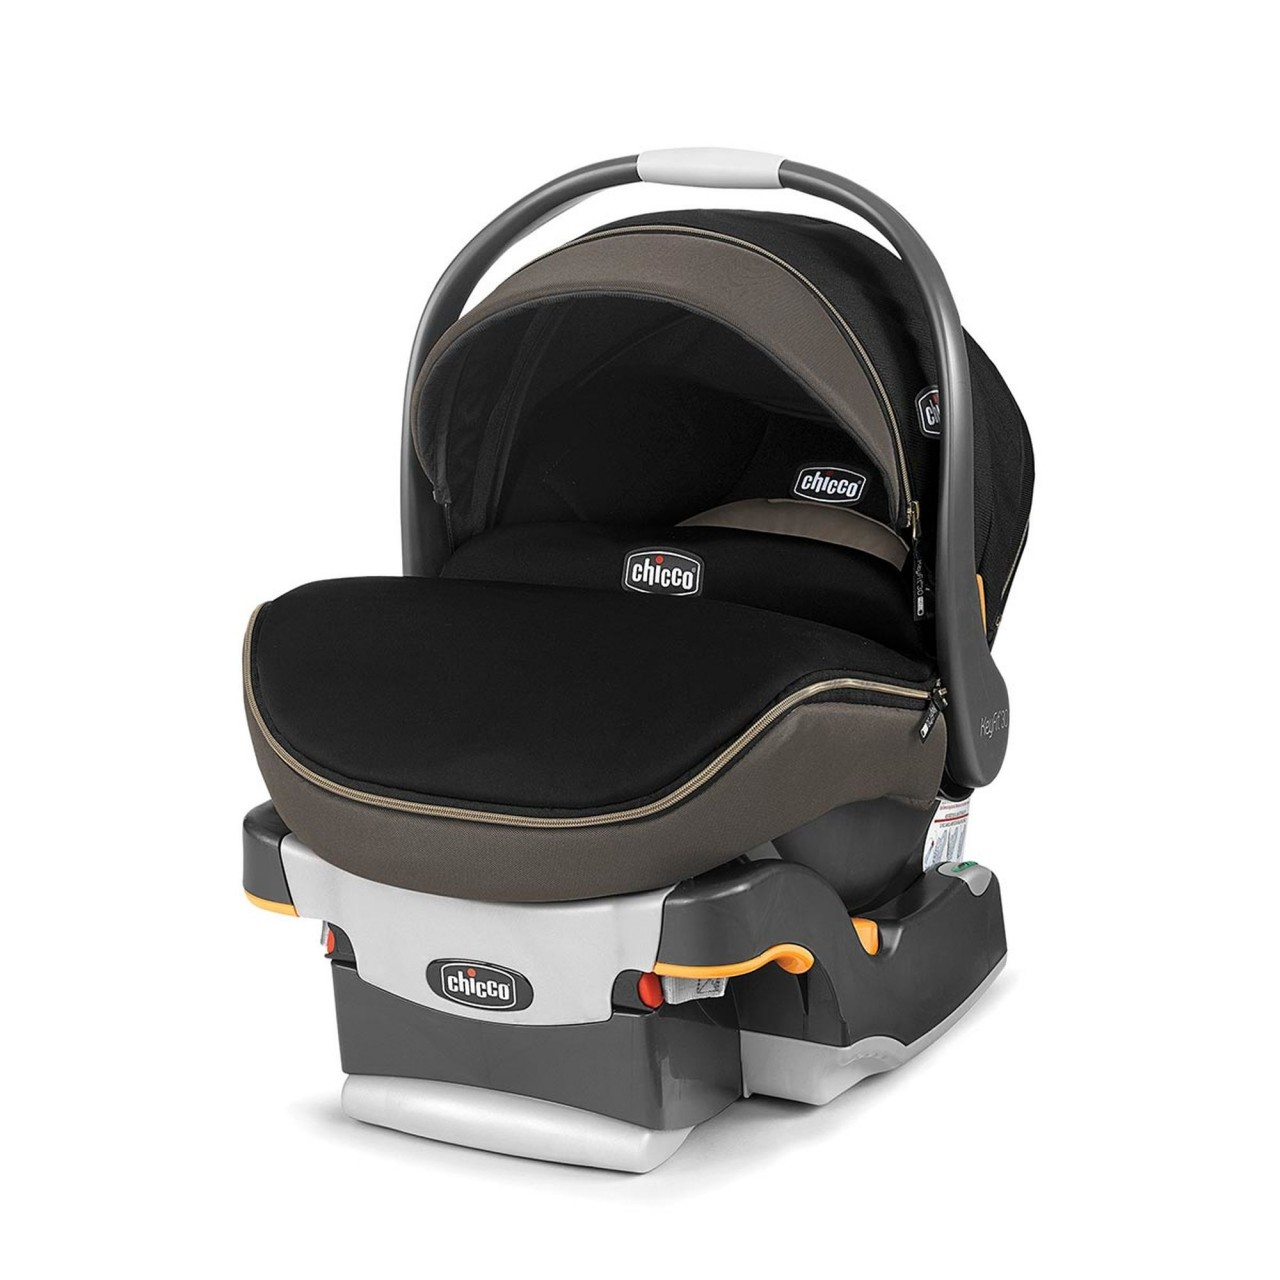 Beb? Conforto Chicco KeyFit 30 Zip Infant Car Seat in Eclipse